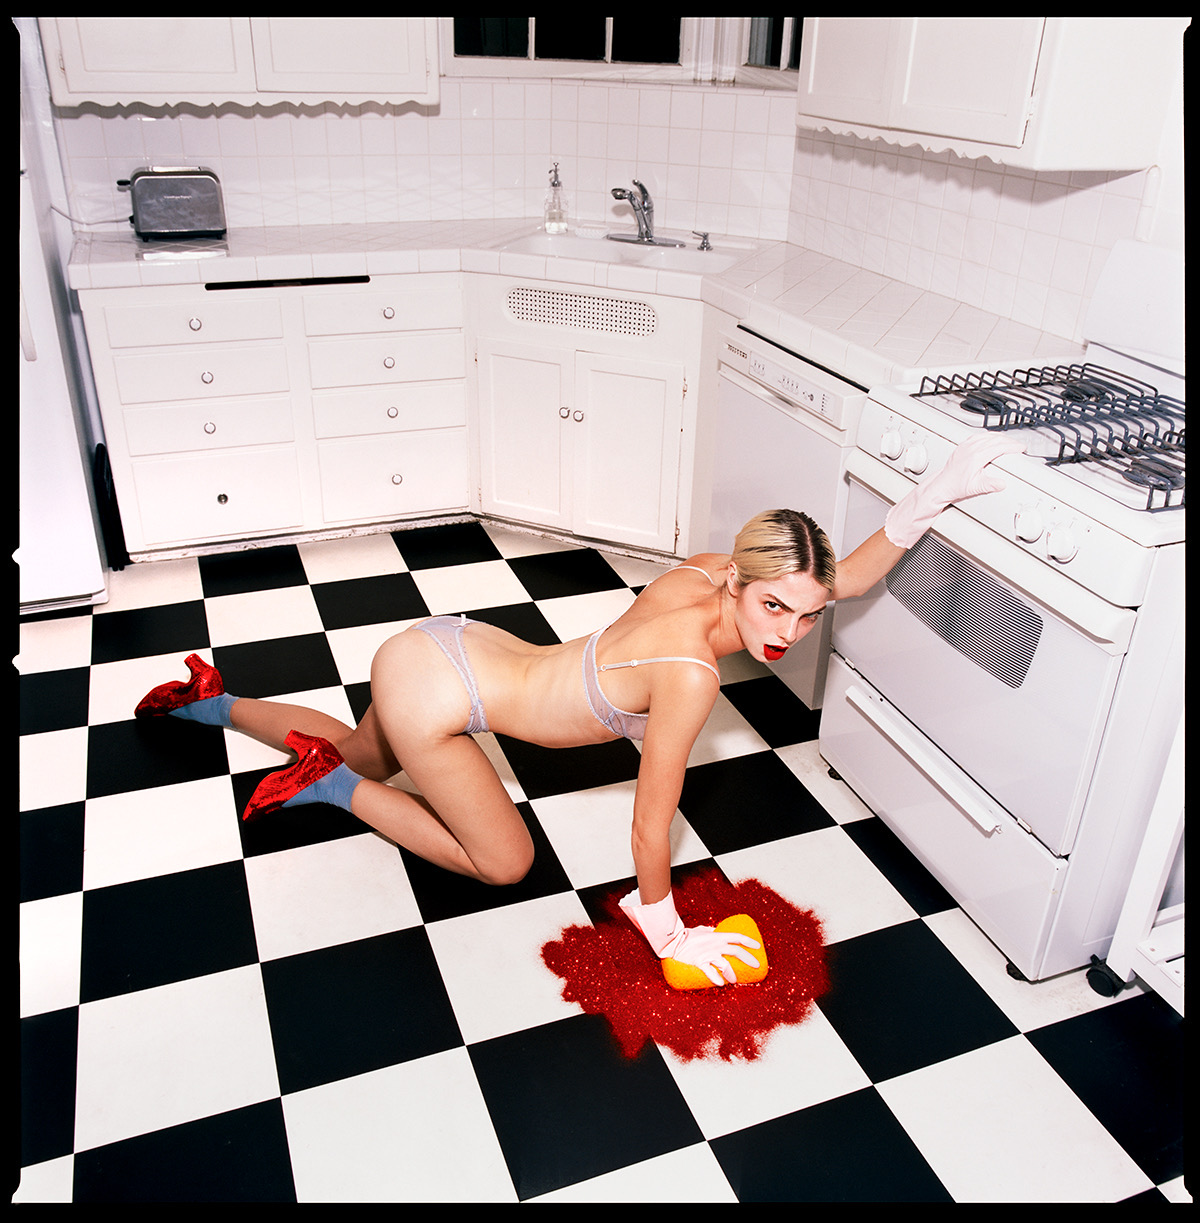 Dorothy in the Kitchen by Tyler Shields